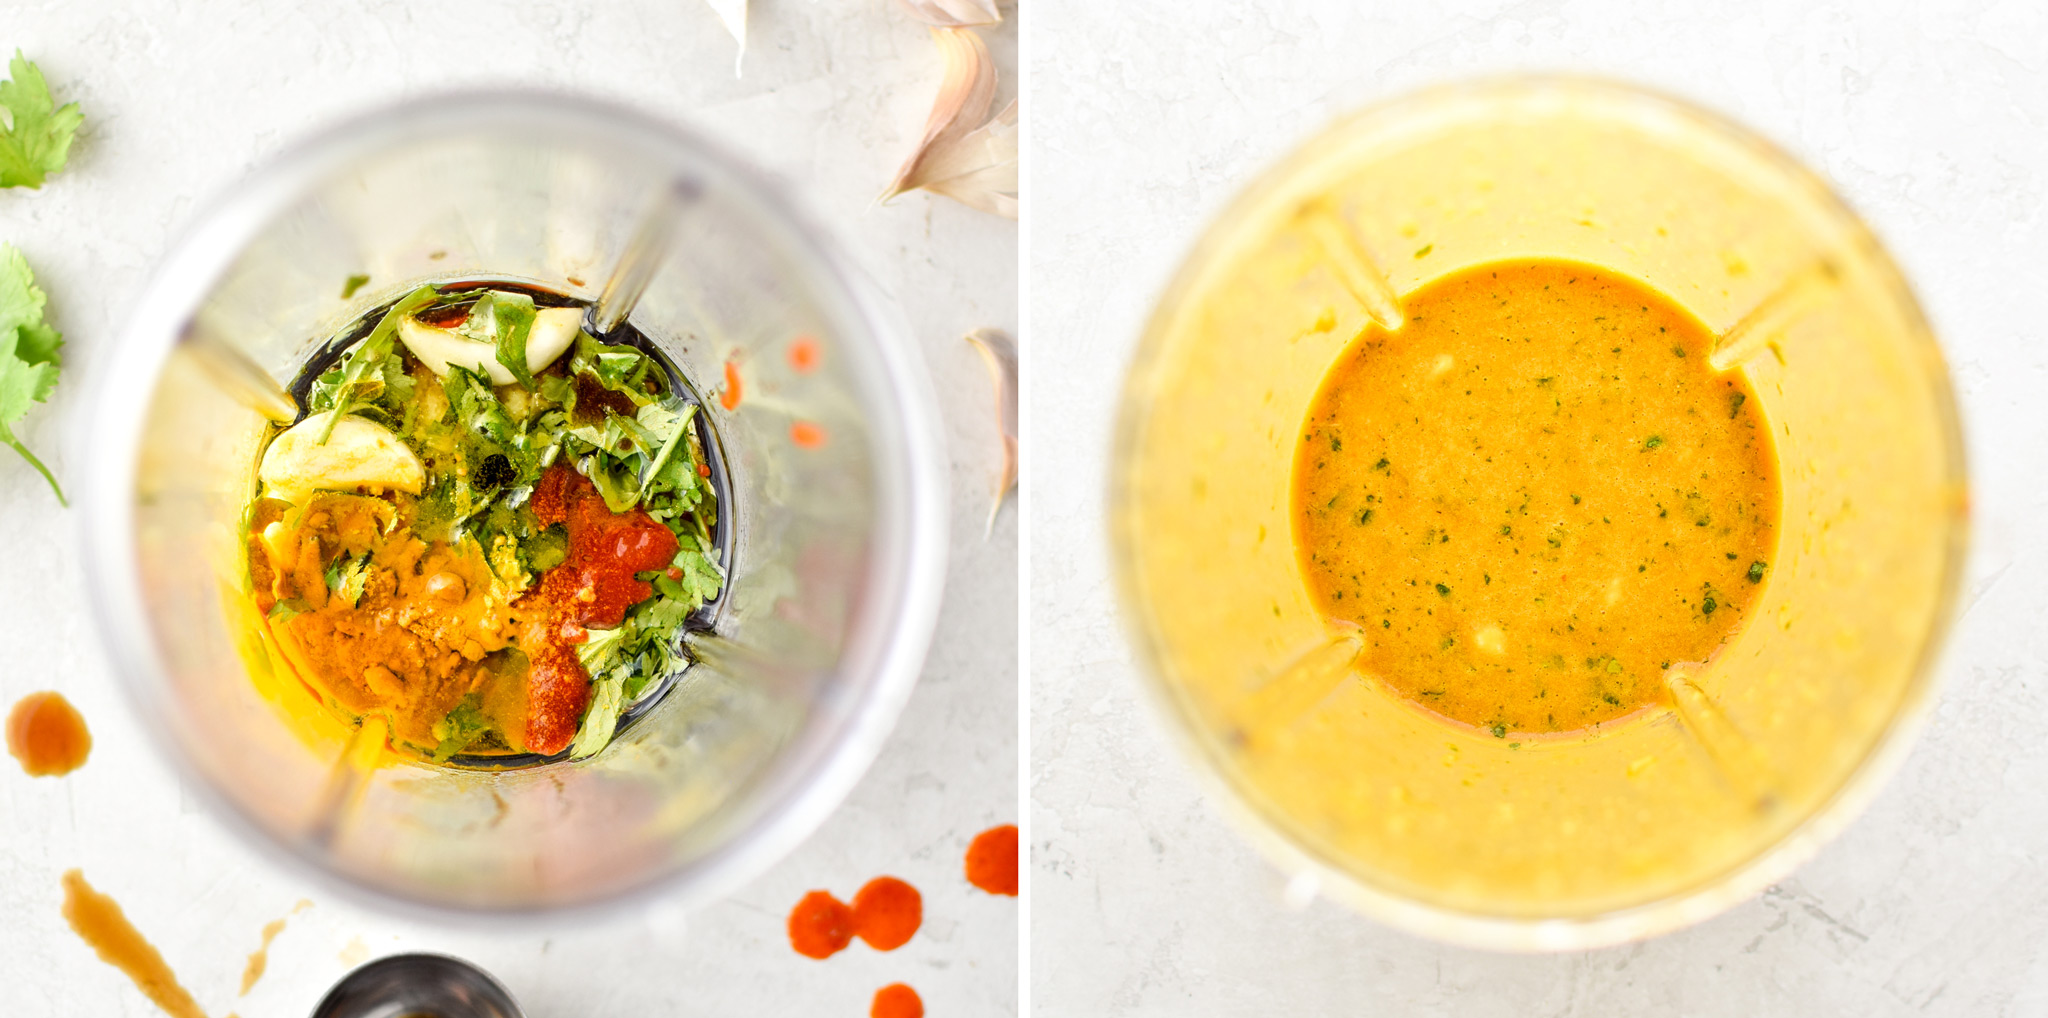 Before and after blending sauce for the Meal Prep Satay Inspired Thai Chicken Salad Bowls.